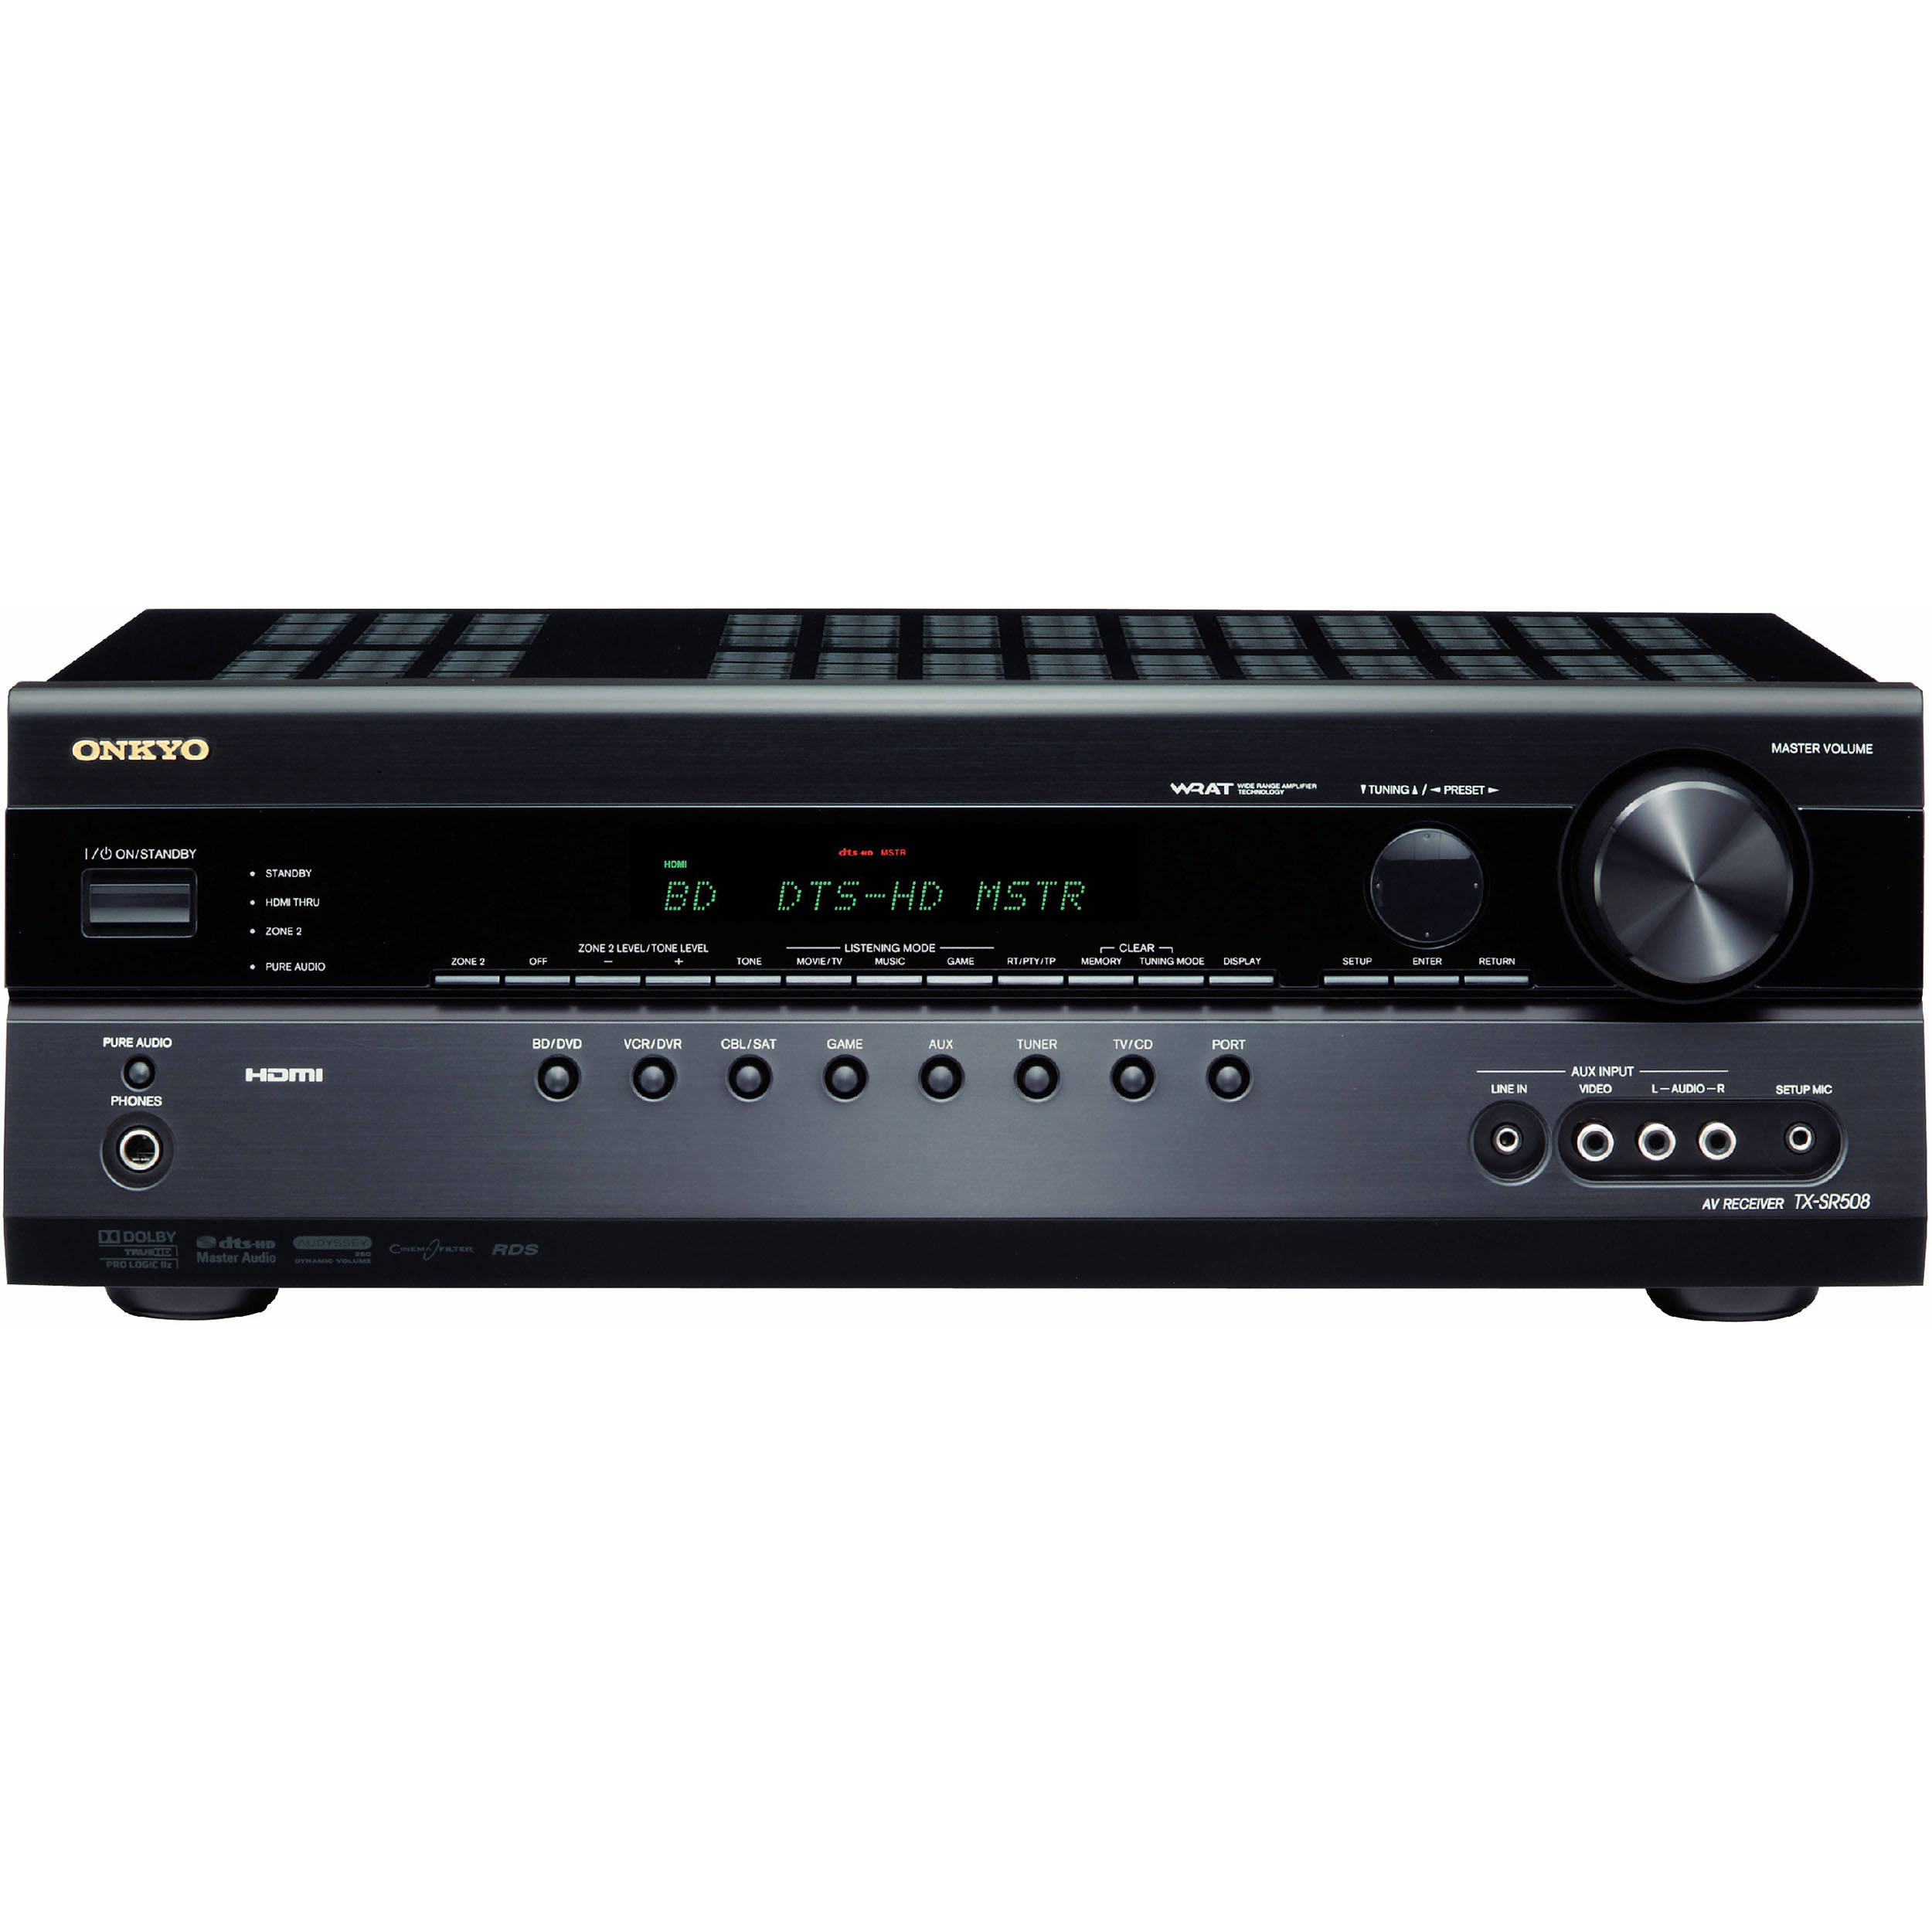 Onkyo Tx Sr508 71 Channel Home Theater Receiver Bh Power Amplifier Compatible With Tv Audio